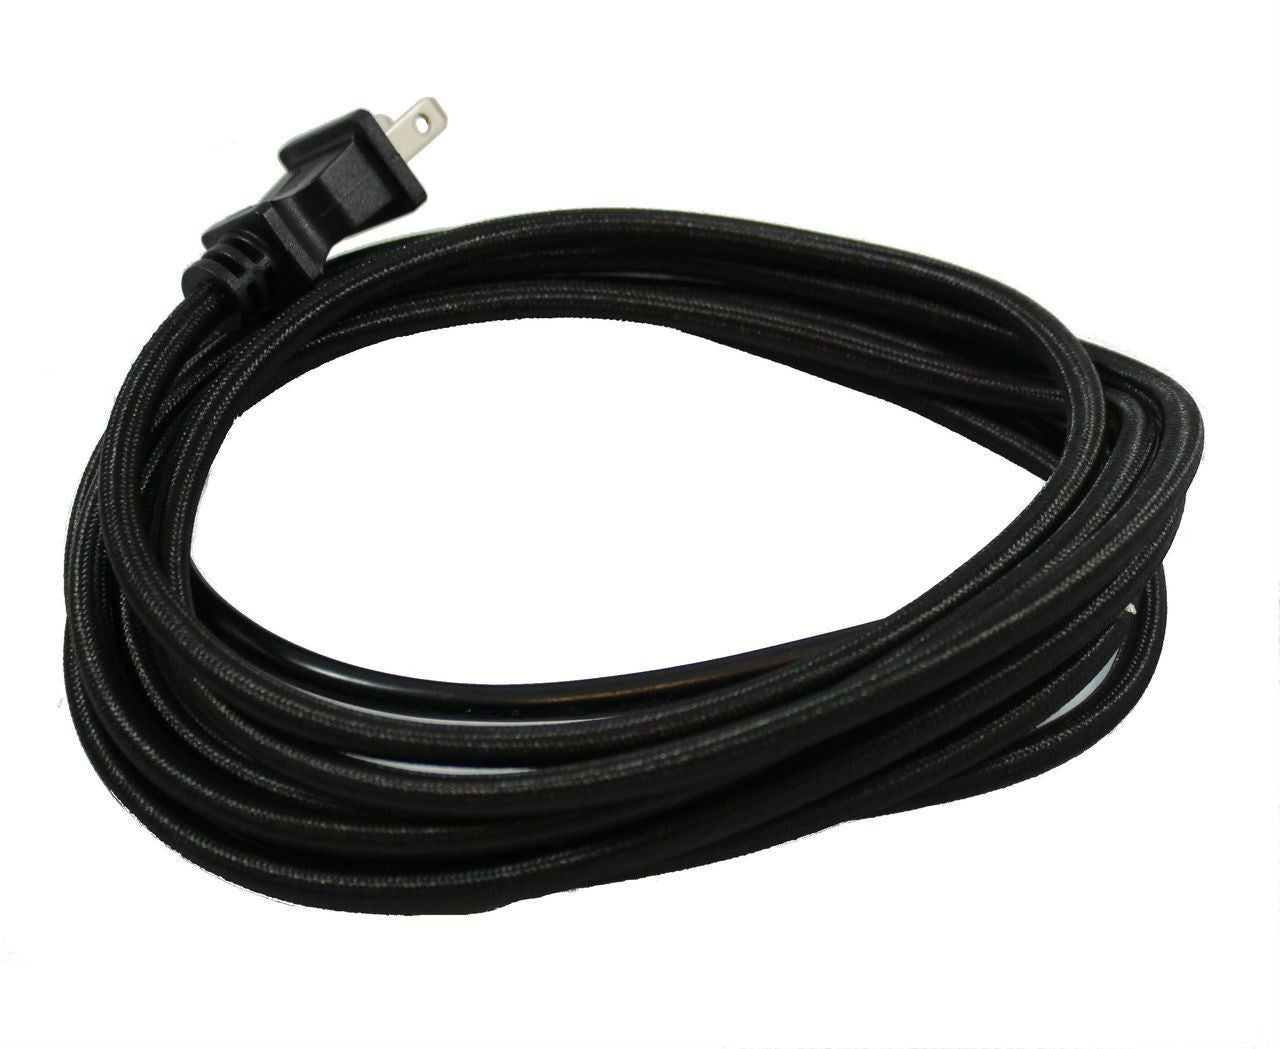 Black Cloth Covered Cord with molded Plug - 10 ft.